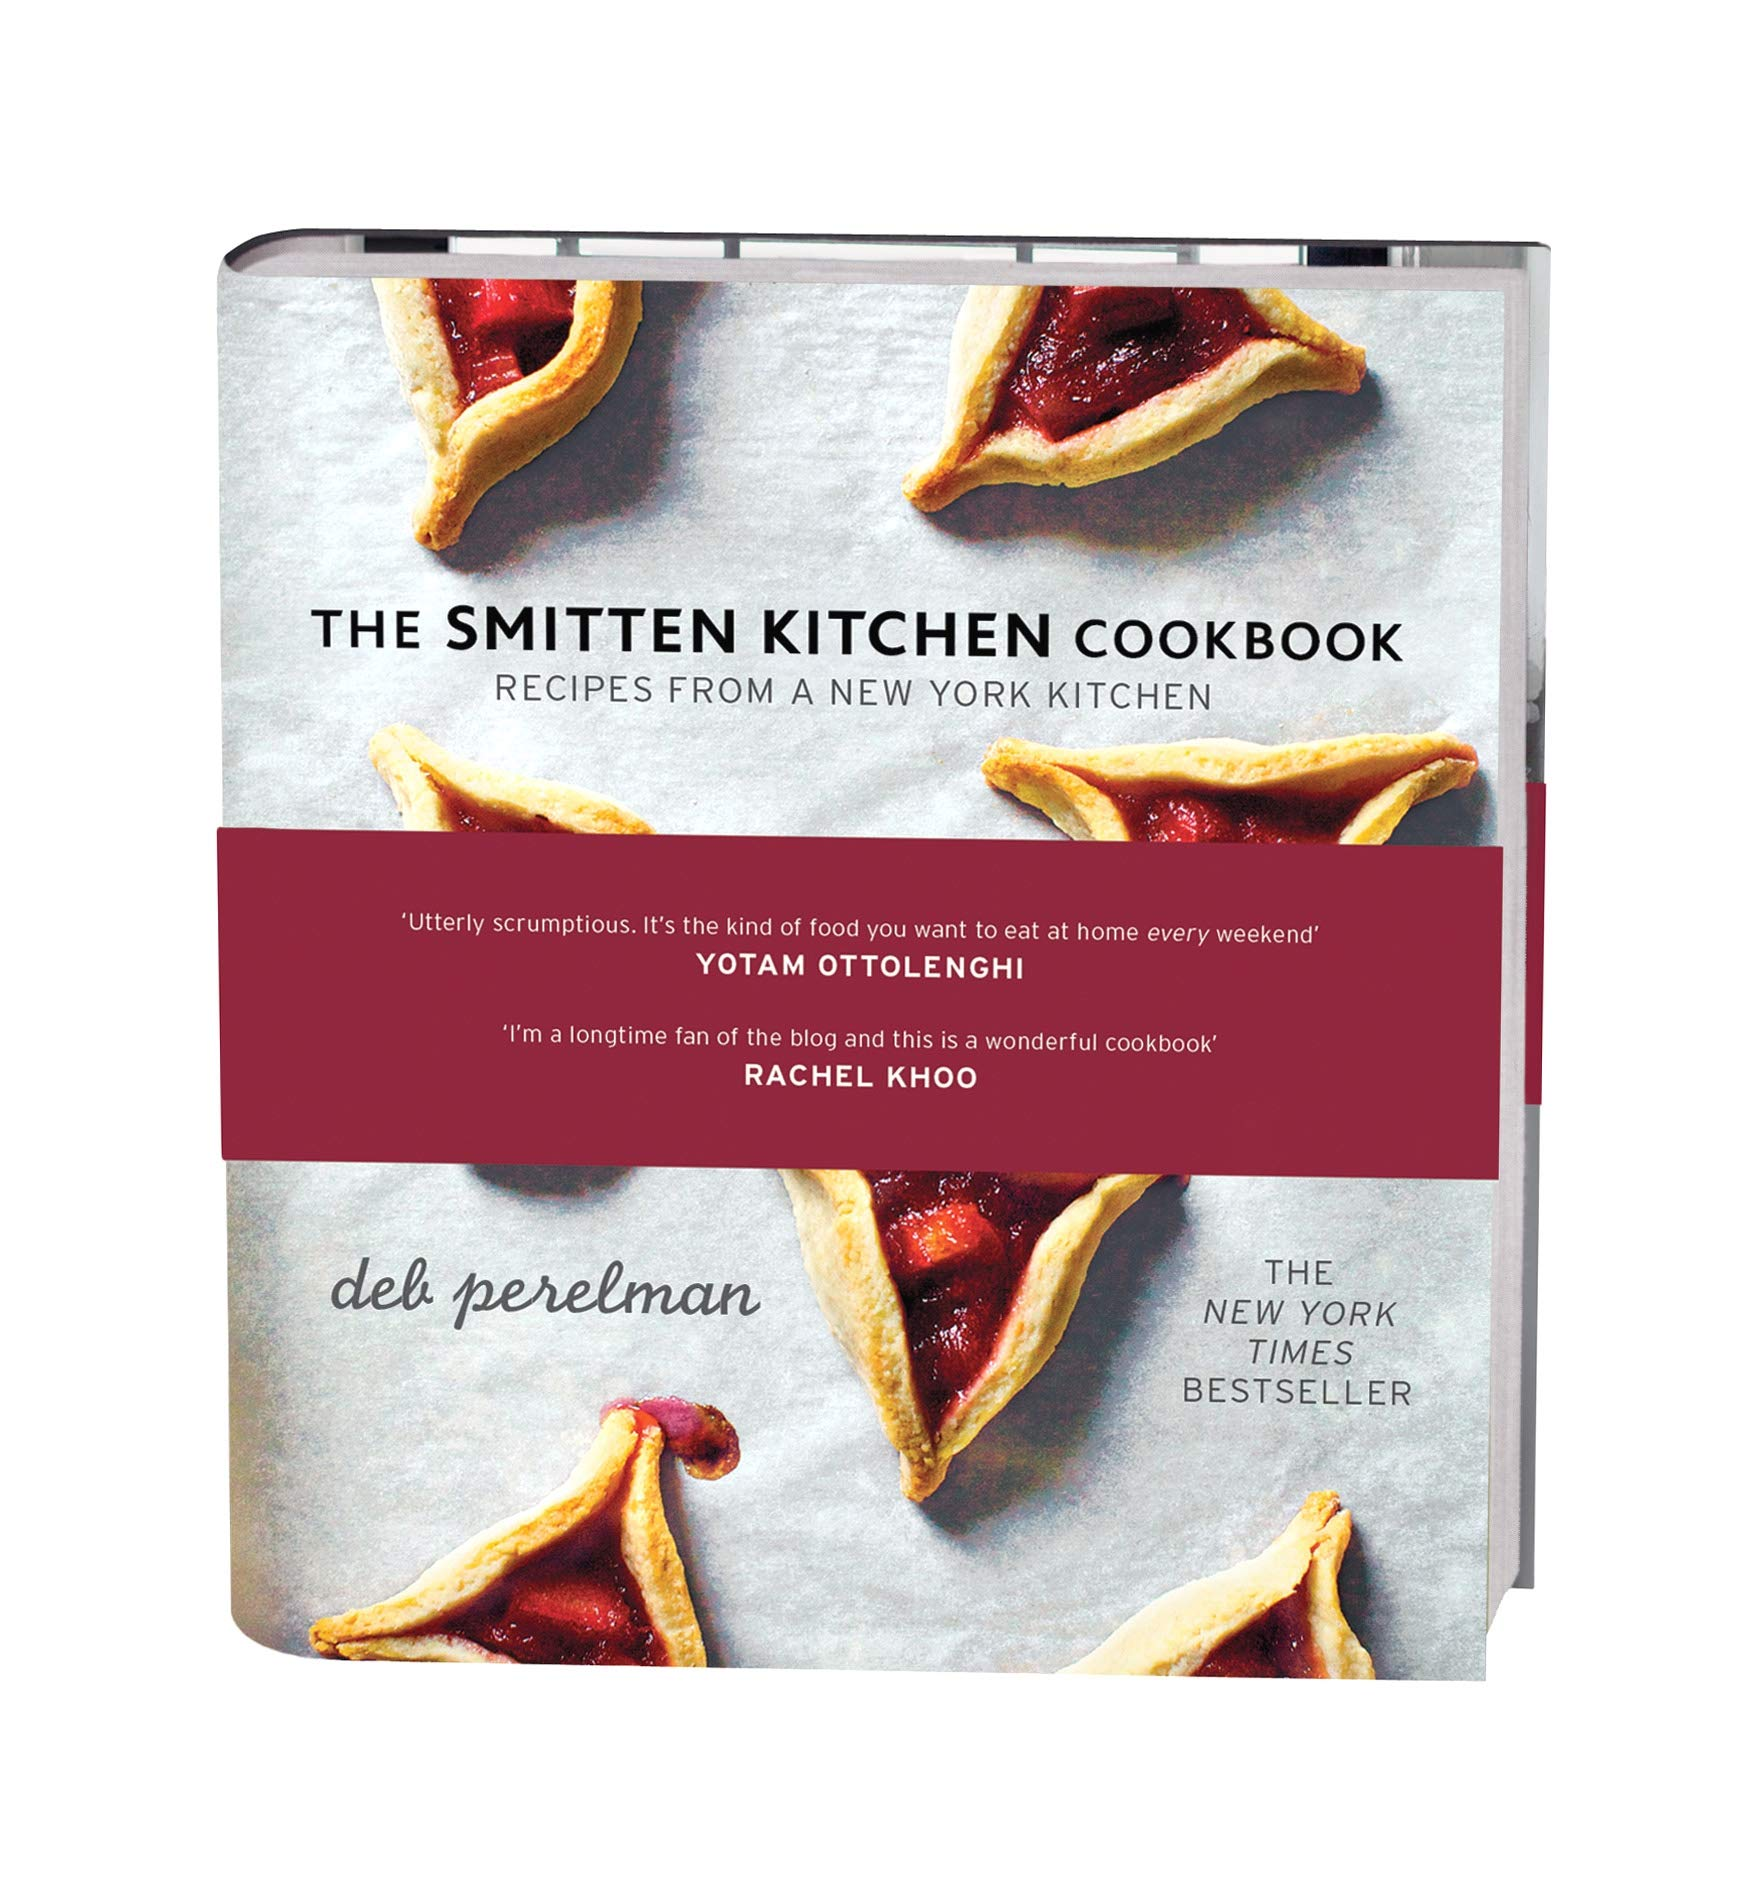 Miraculous The Smitten Kitchen Cookbook Amazon Co Uk Perelman Deb Funny Birthday Cards Online Barepcheapnameinfo